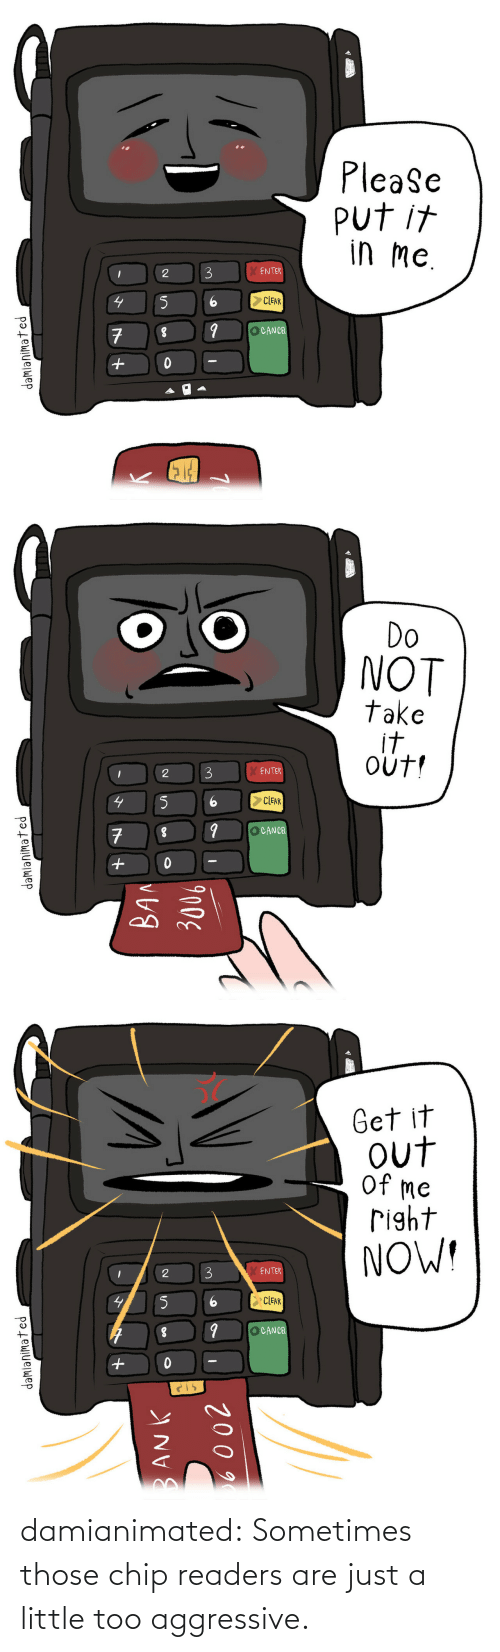 A Little: damianimated: Sometimes those chip readers are just a little too aggressive.